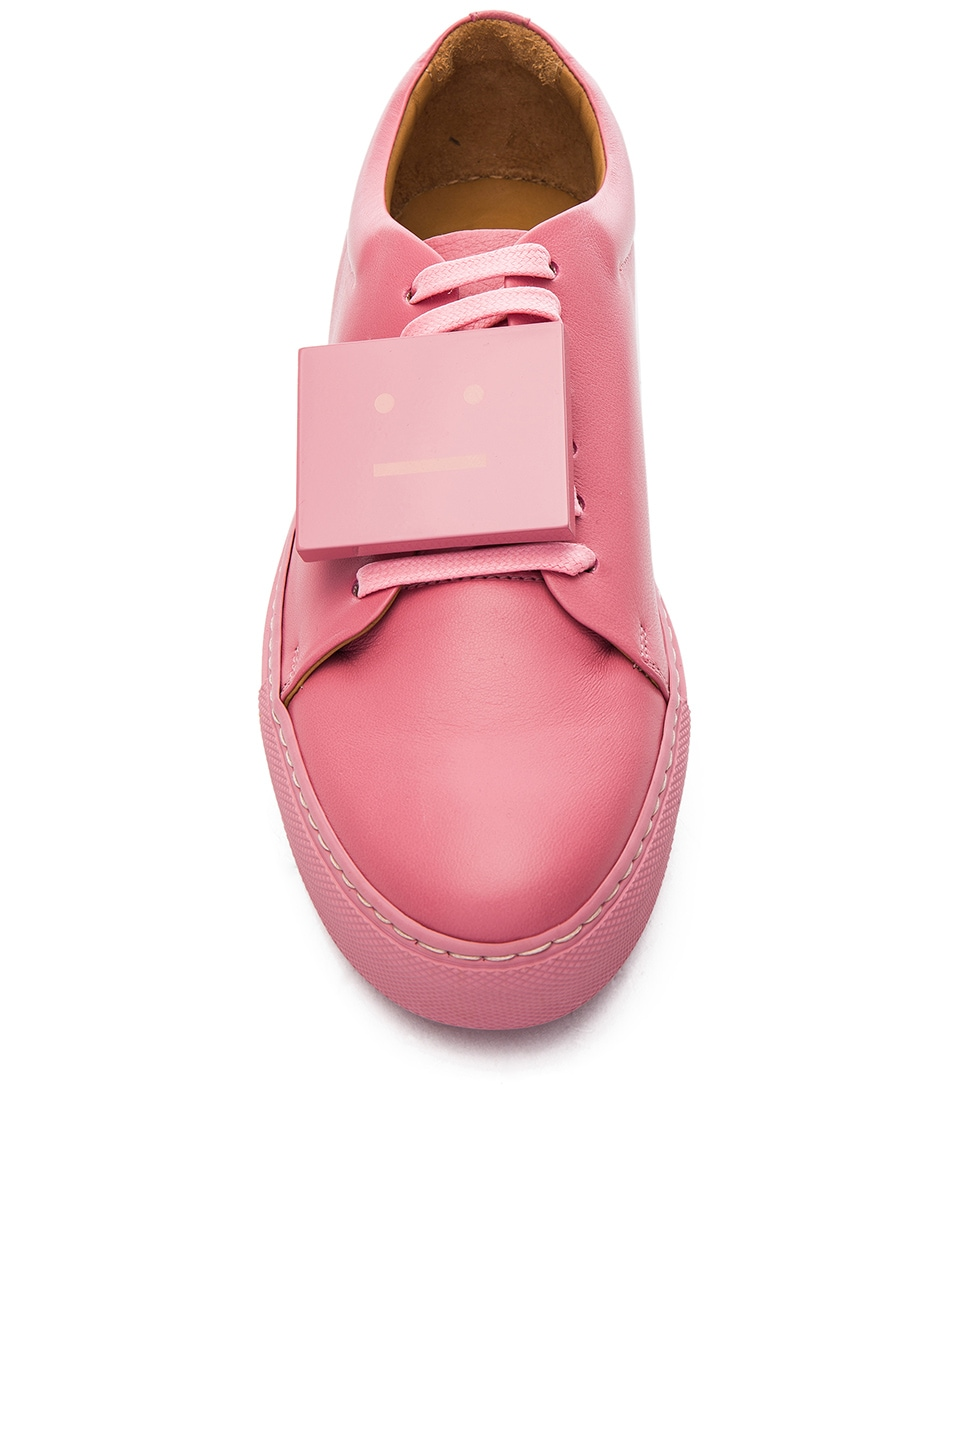 ADRIANA TURN UP SNEAKER Acne Studios aGlHnm